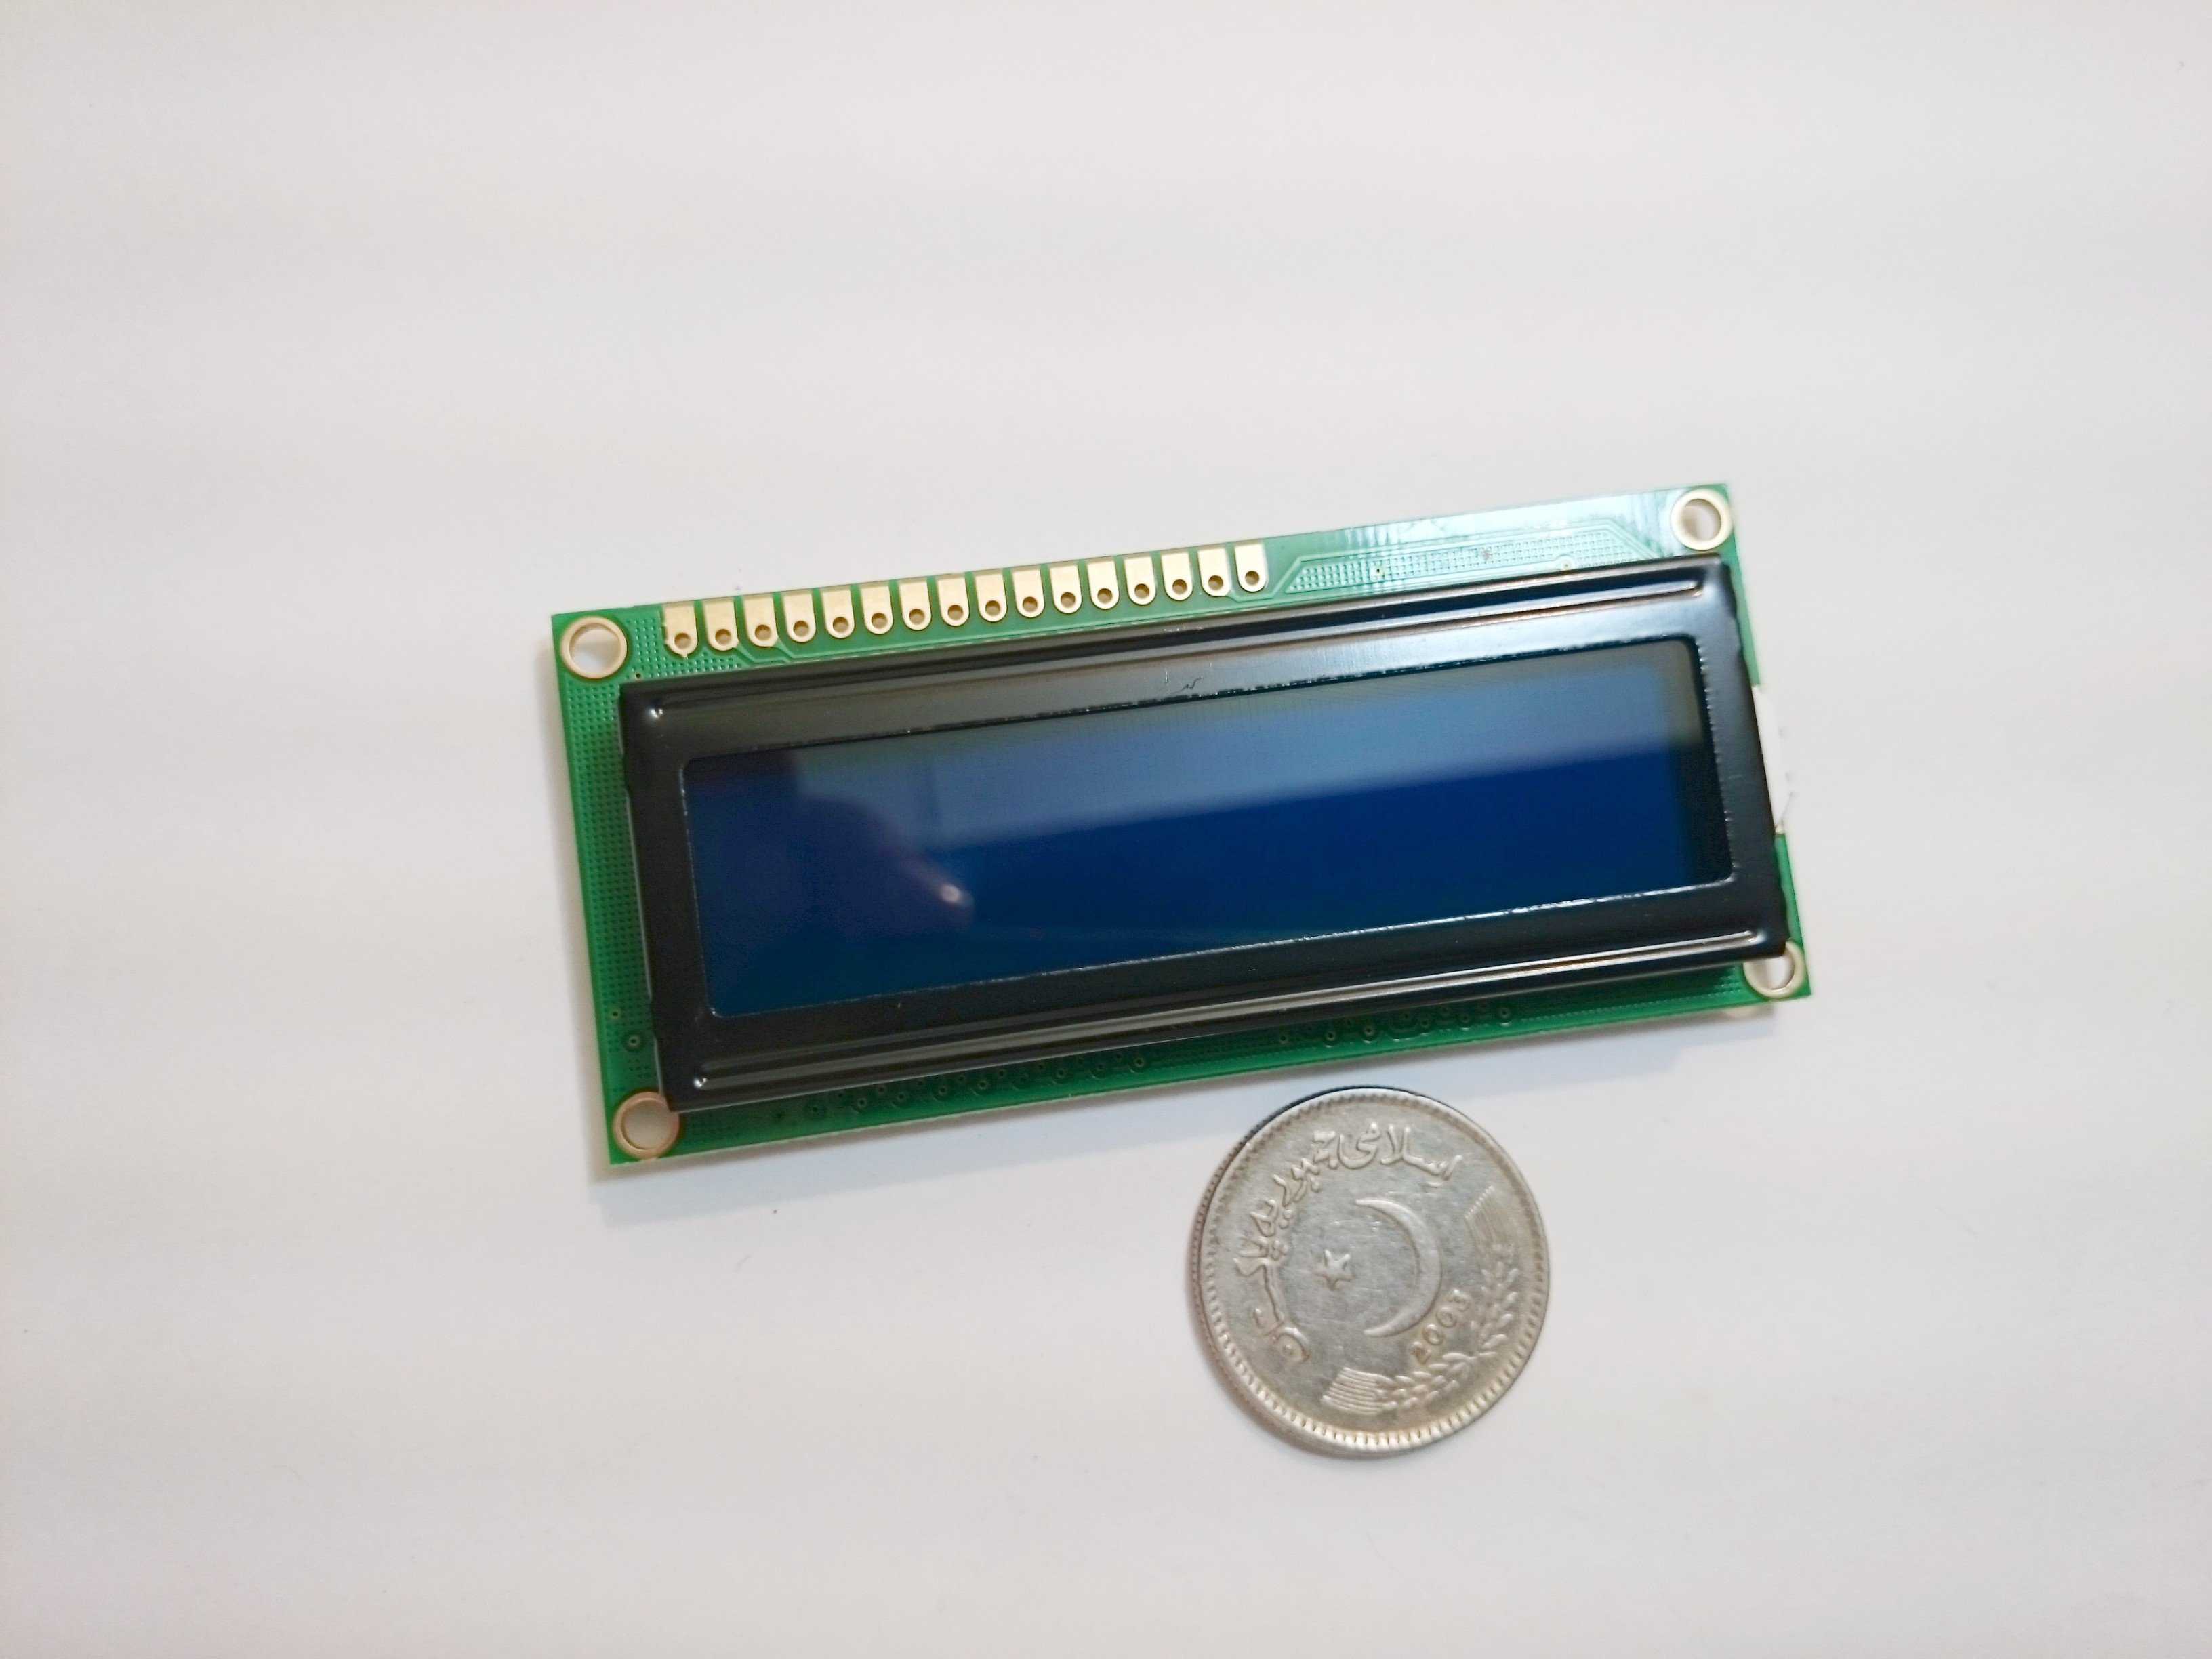 16x2 Character LCD Module; Size : 80.0*36.0*11.8mm